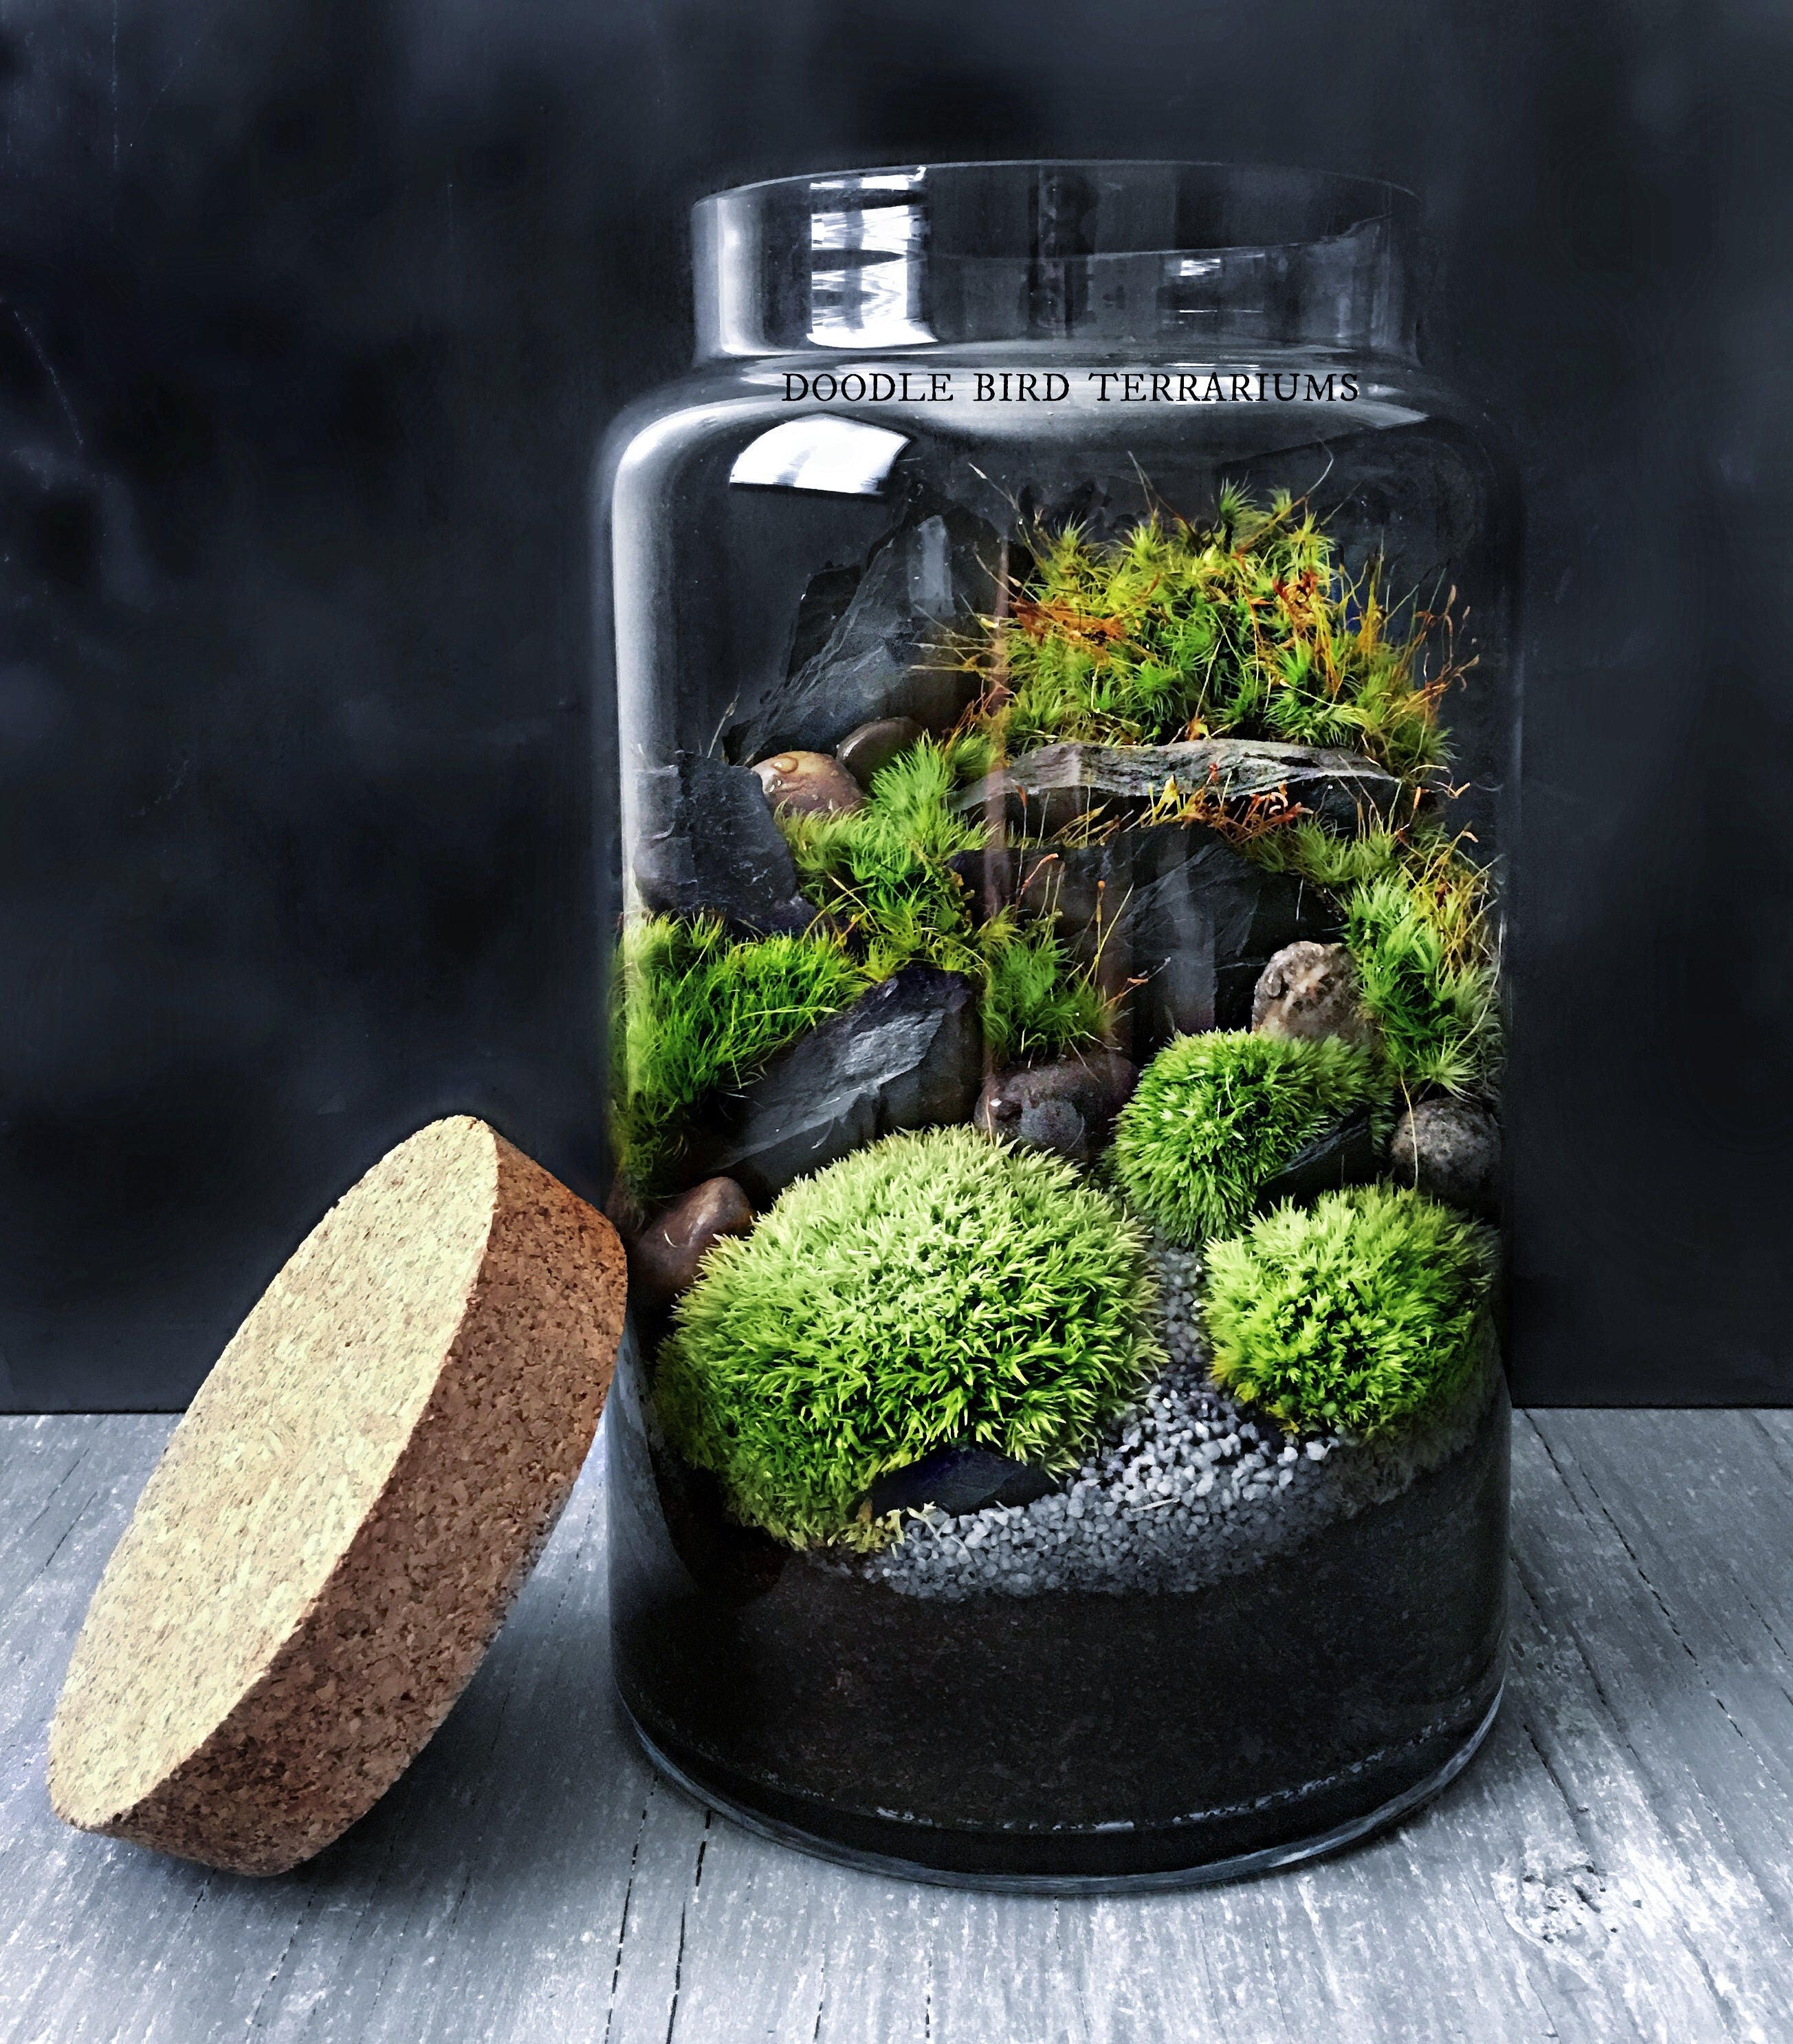 woodland moss and fern terrarium in large glass jar. Black Bedroom Furniture Sets. Home Design Ideas